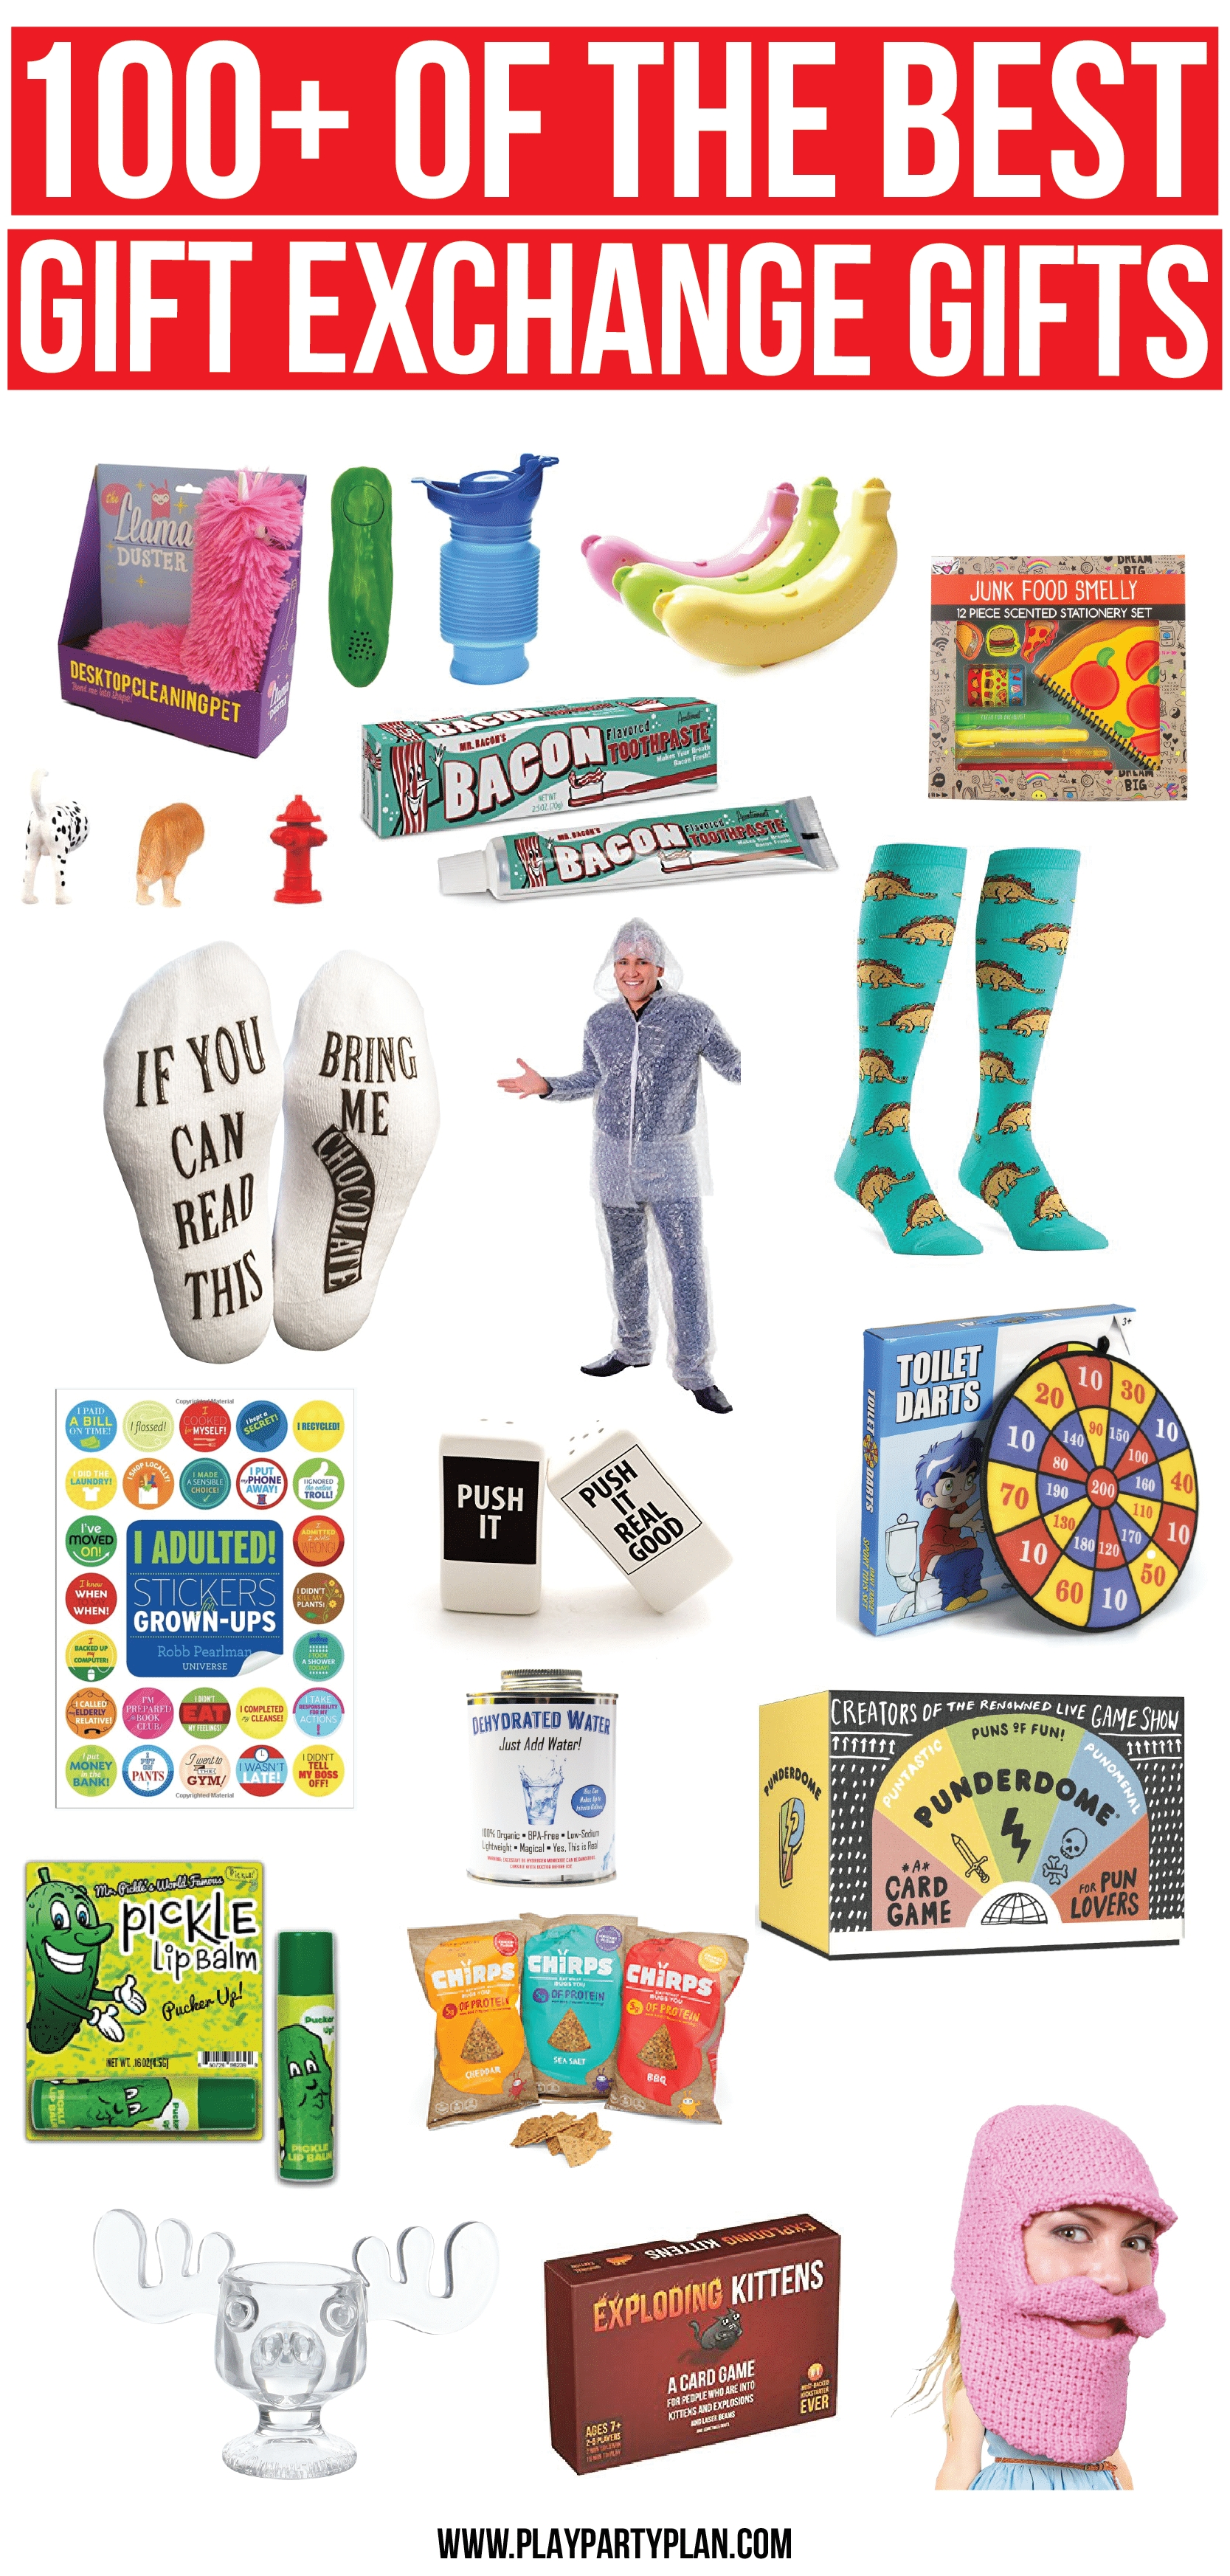 100+ of the best white elephant gifts & other gift ideas - play